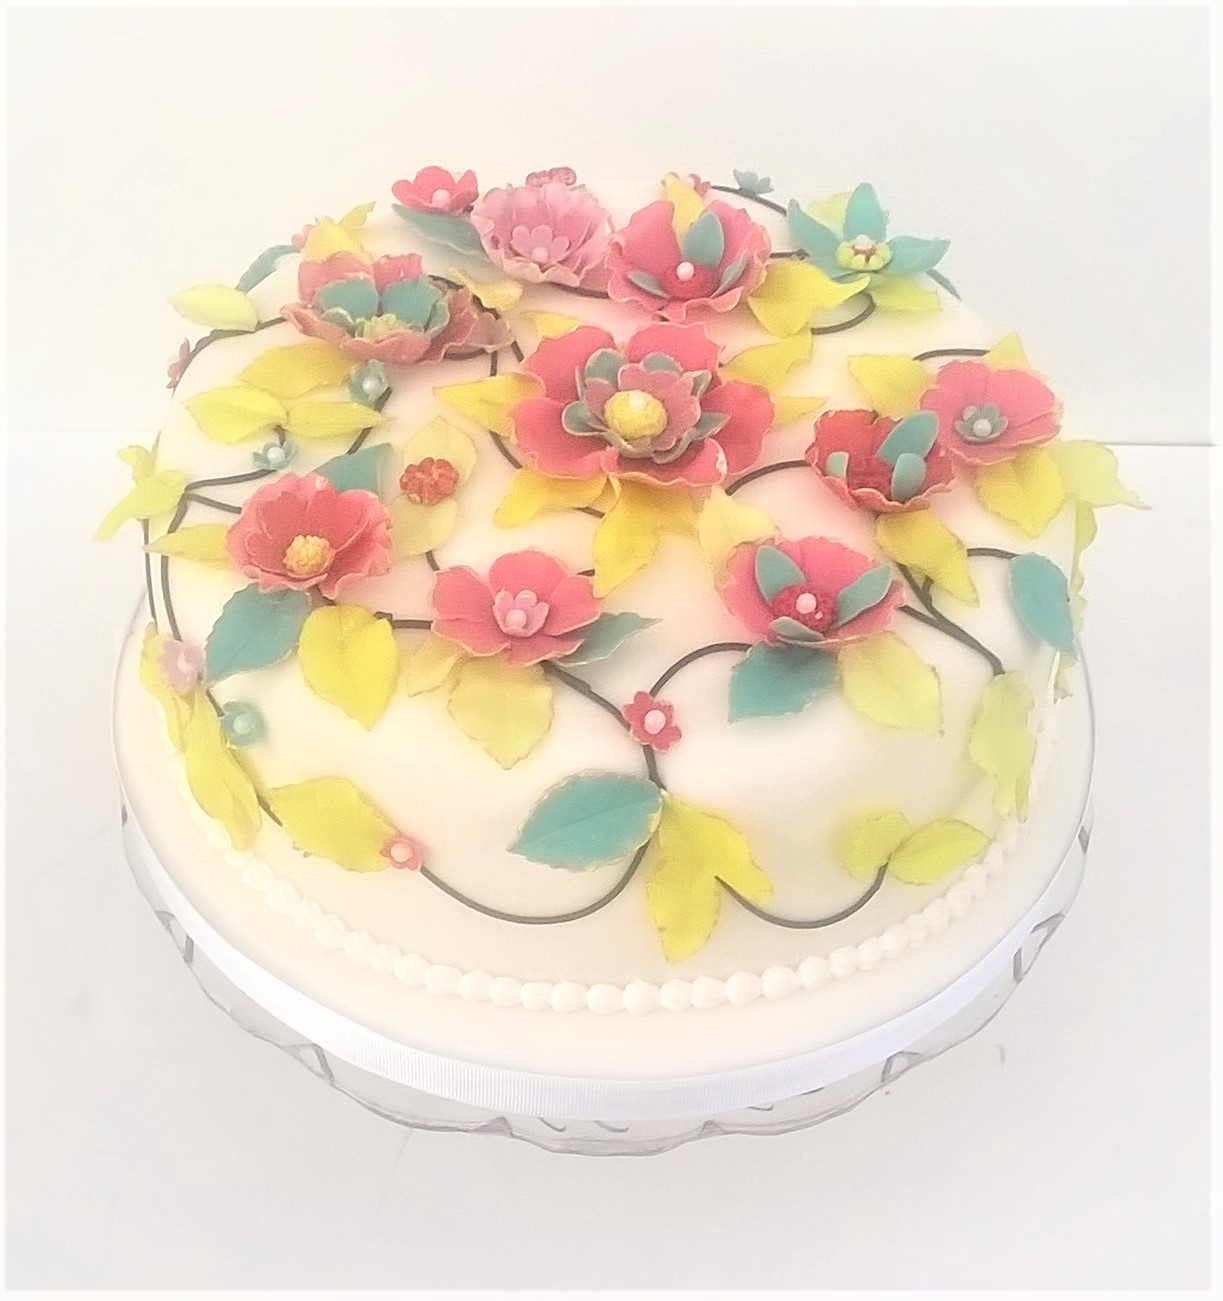 White party cake with fantasy flowers and leaves